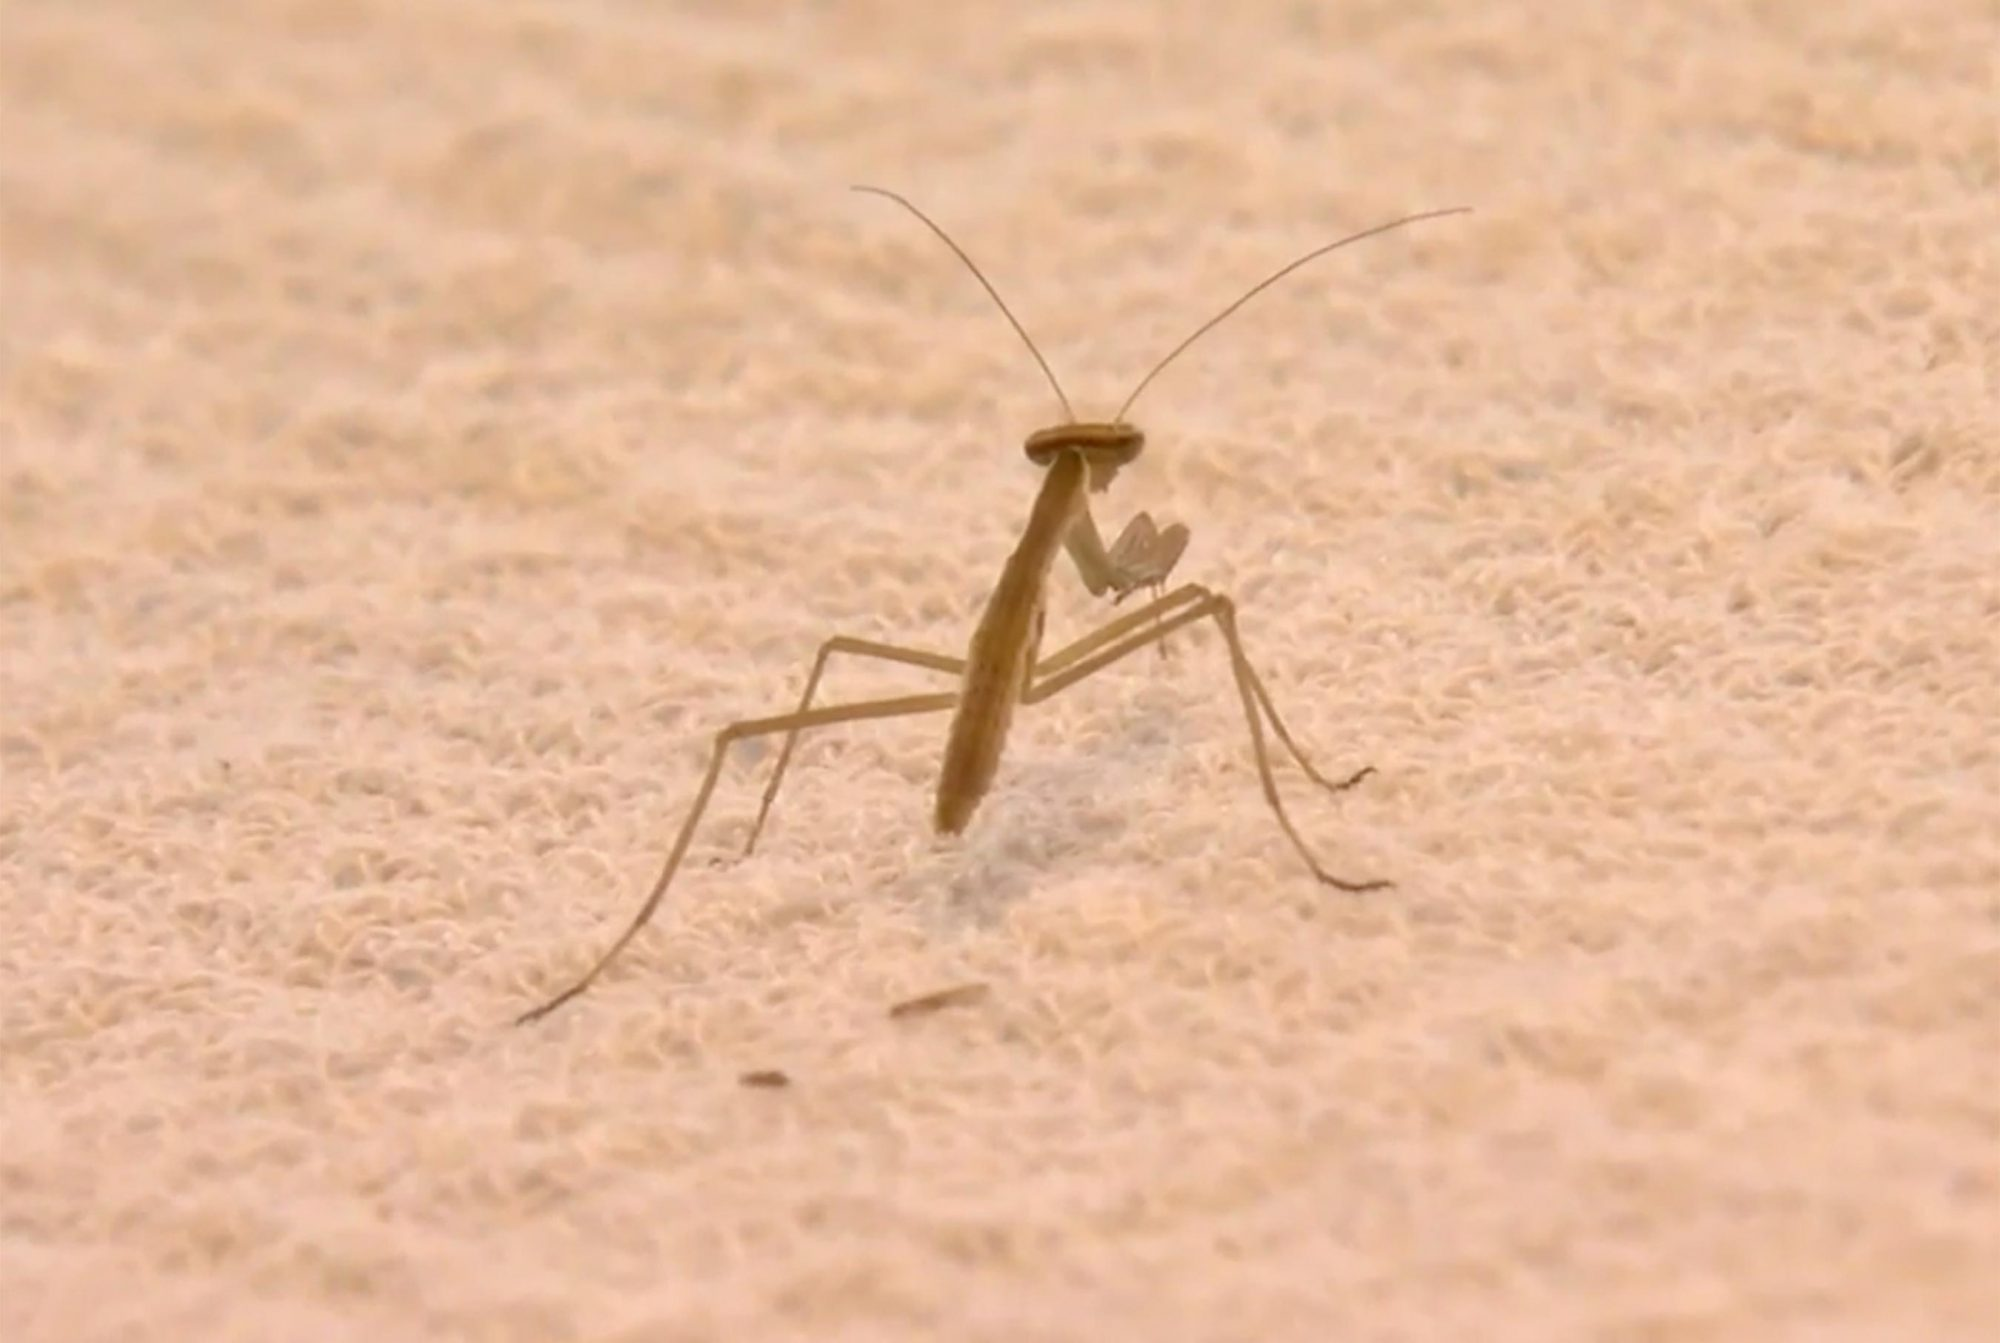 Virginia Woman's Home Invaded by More Than 100 Praying Mantises Brought in by Christmas Tree mantis-tree